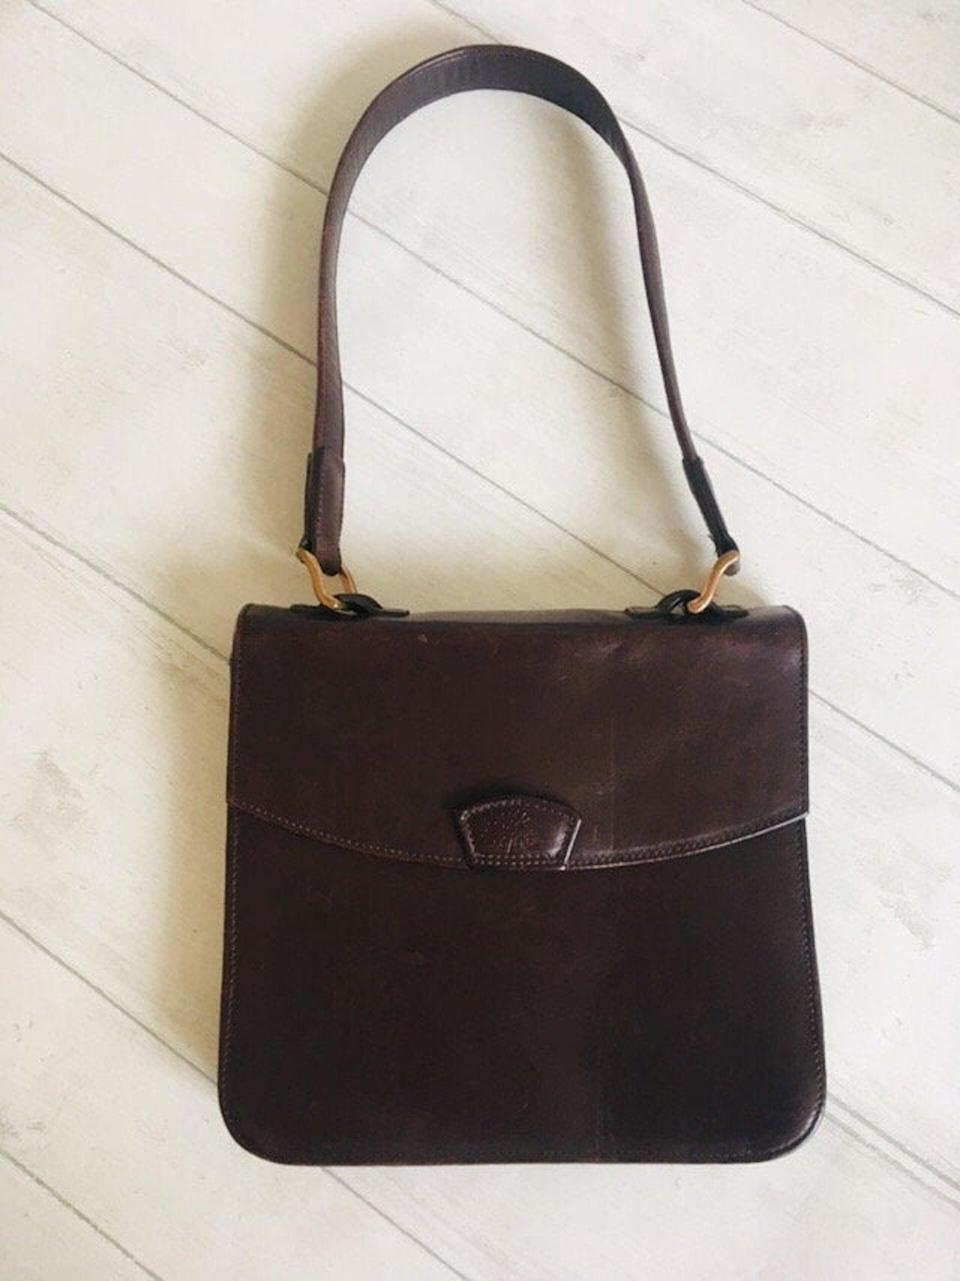 "If I'm gonna buy big labels, I'm gonna buy them secondhand, and this is an absolute winner. I love the colour, the shape, the size. I've been falling back on tote bags for too long! It's time to change it up again.<br><br><strong>Mulberry</strong> Dark Brown Shoulder Bag, $, available at <a href=""https://www.etsy.com/uk/listing/733039201/vintage-mulberry-shoulder-bagstructured?"" rel=""nofollow noopener"" target=""_blank"" data-ylk=""slk:Etsy"" class=""link rapid-noclick-resp"">Etsy</a>"